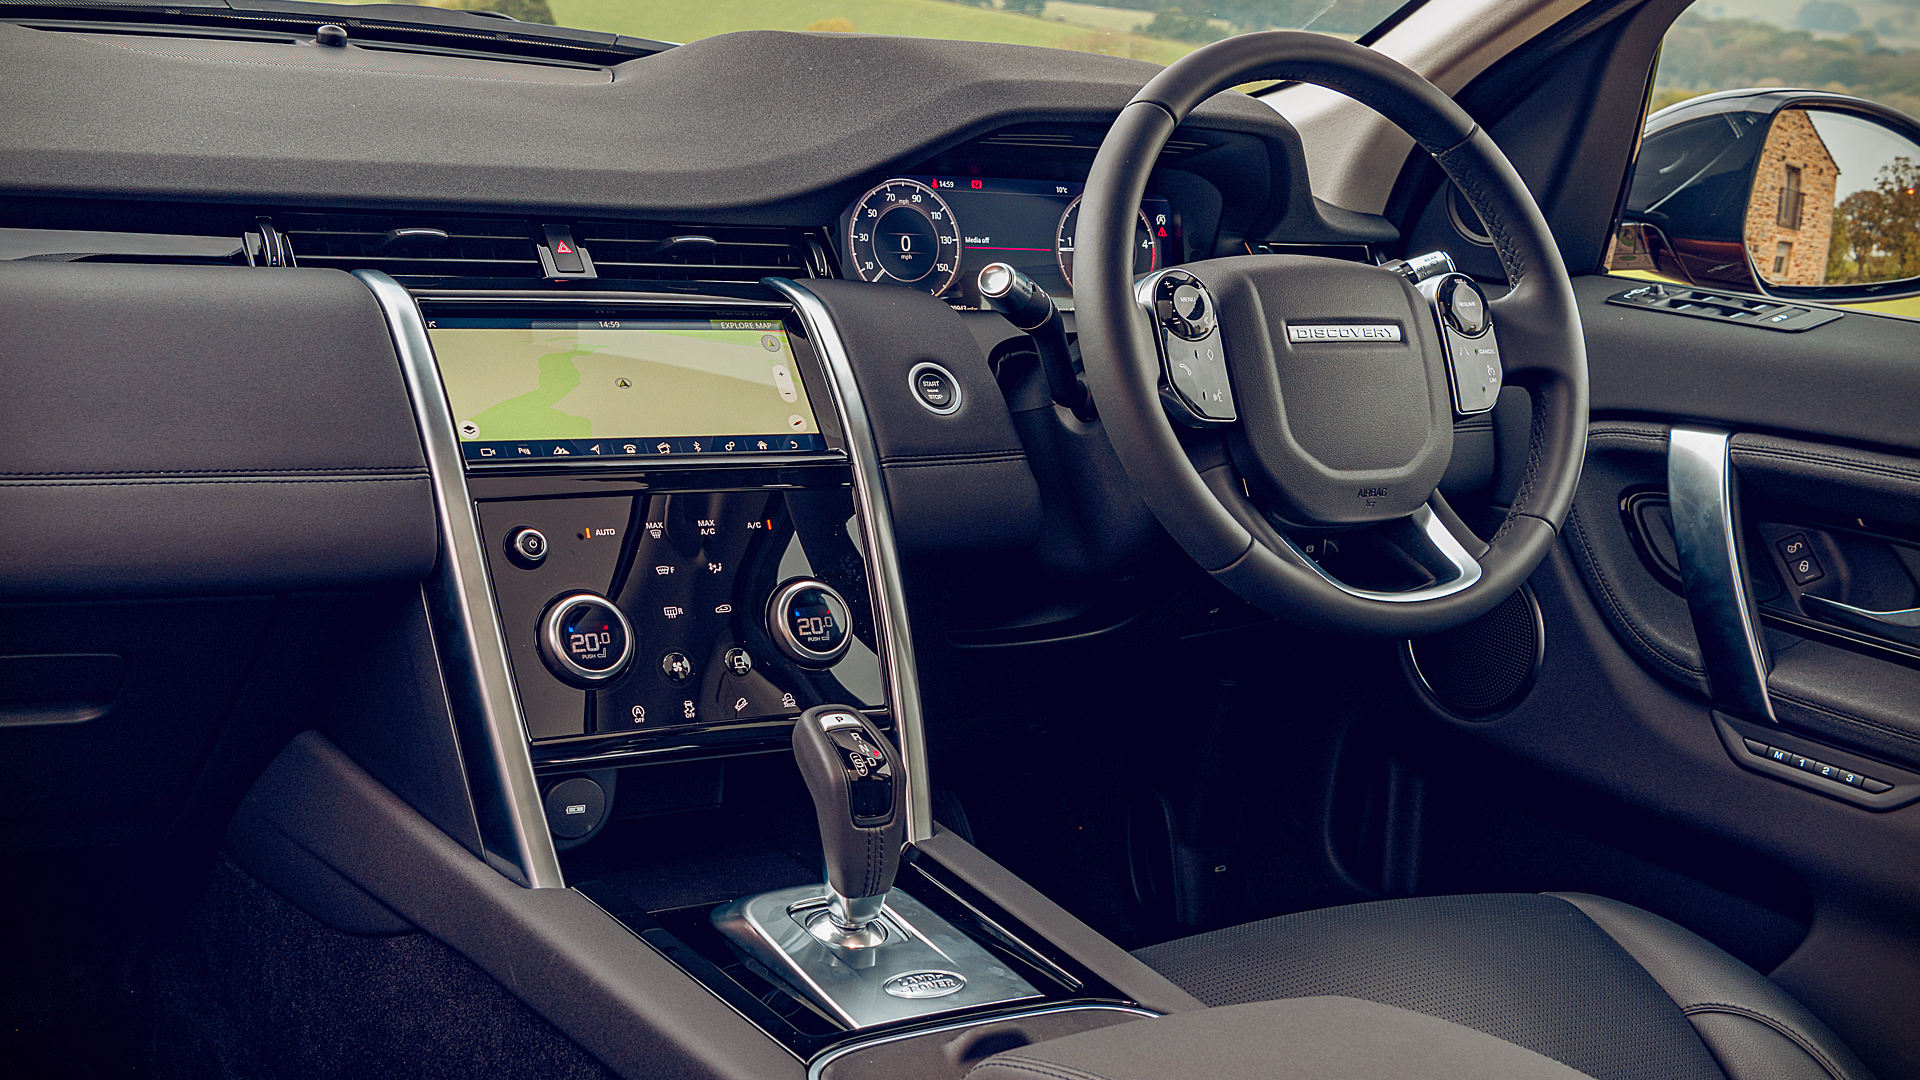 2020 Land Rover Discovery Sport UK Interior